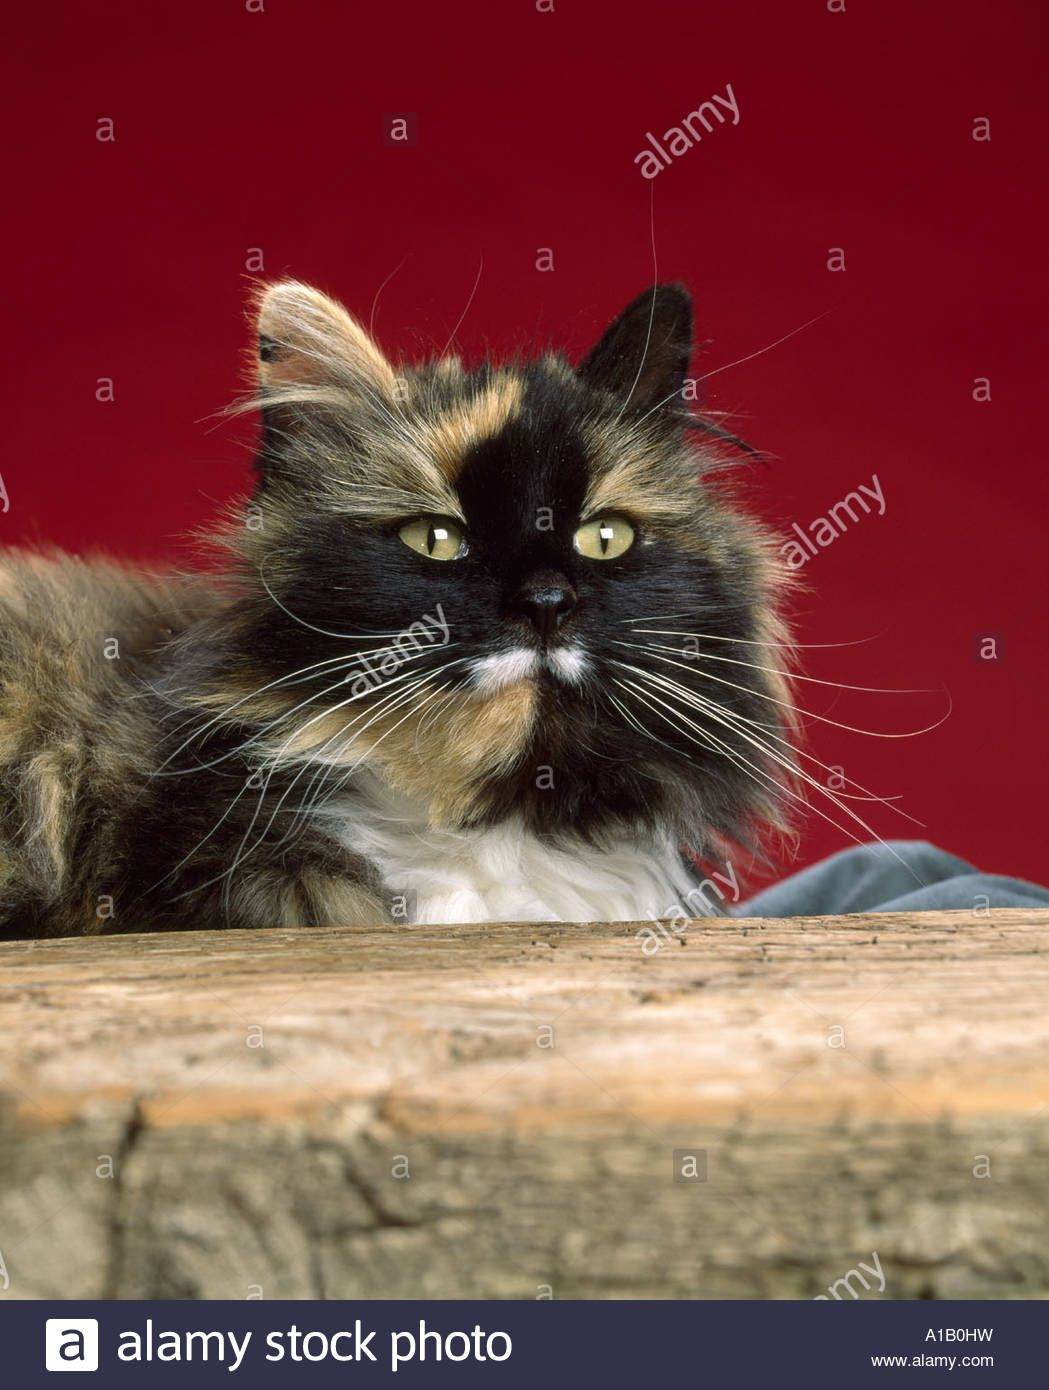 c175e524855 Download this stock image: LONG HAIRED CALICO CAT / COLORADO - A1B0HW from  Alamy's library of millions of high resolution stock photos, illustrations  and ...